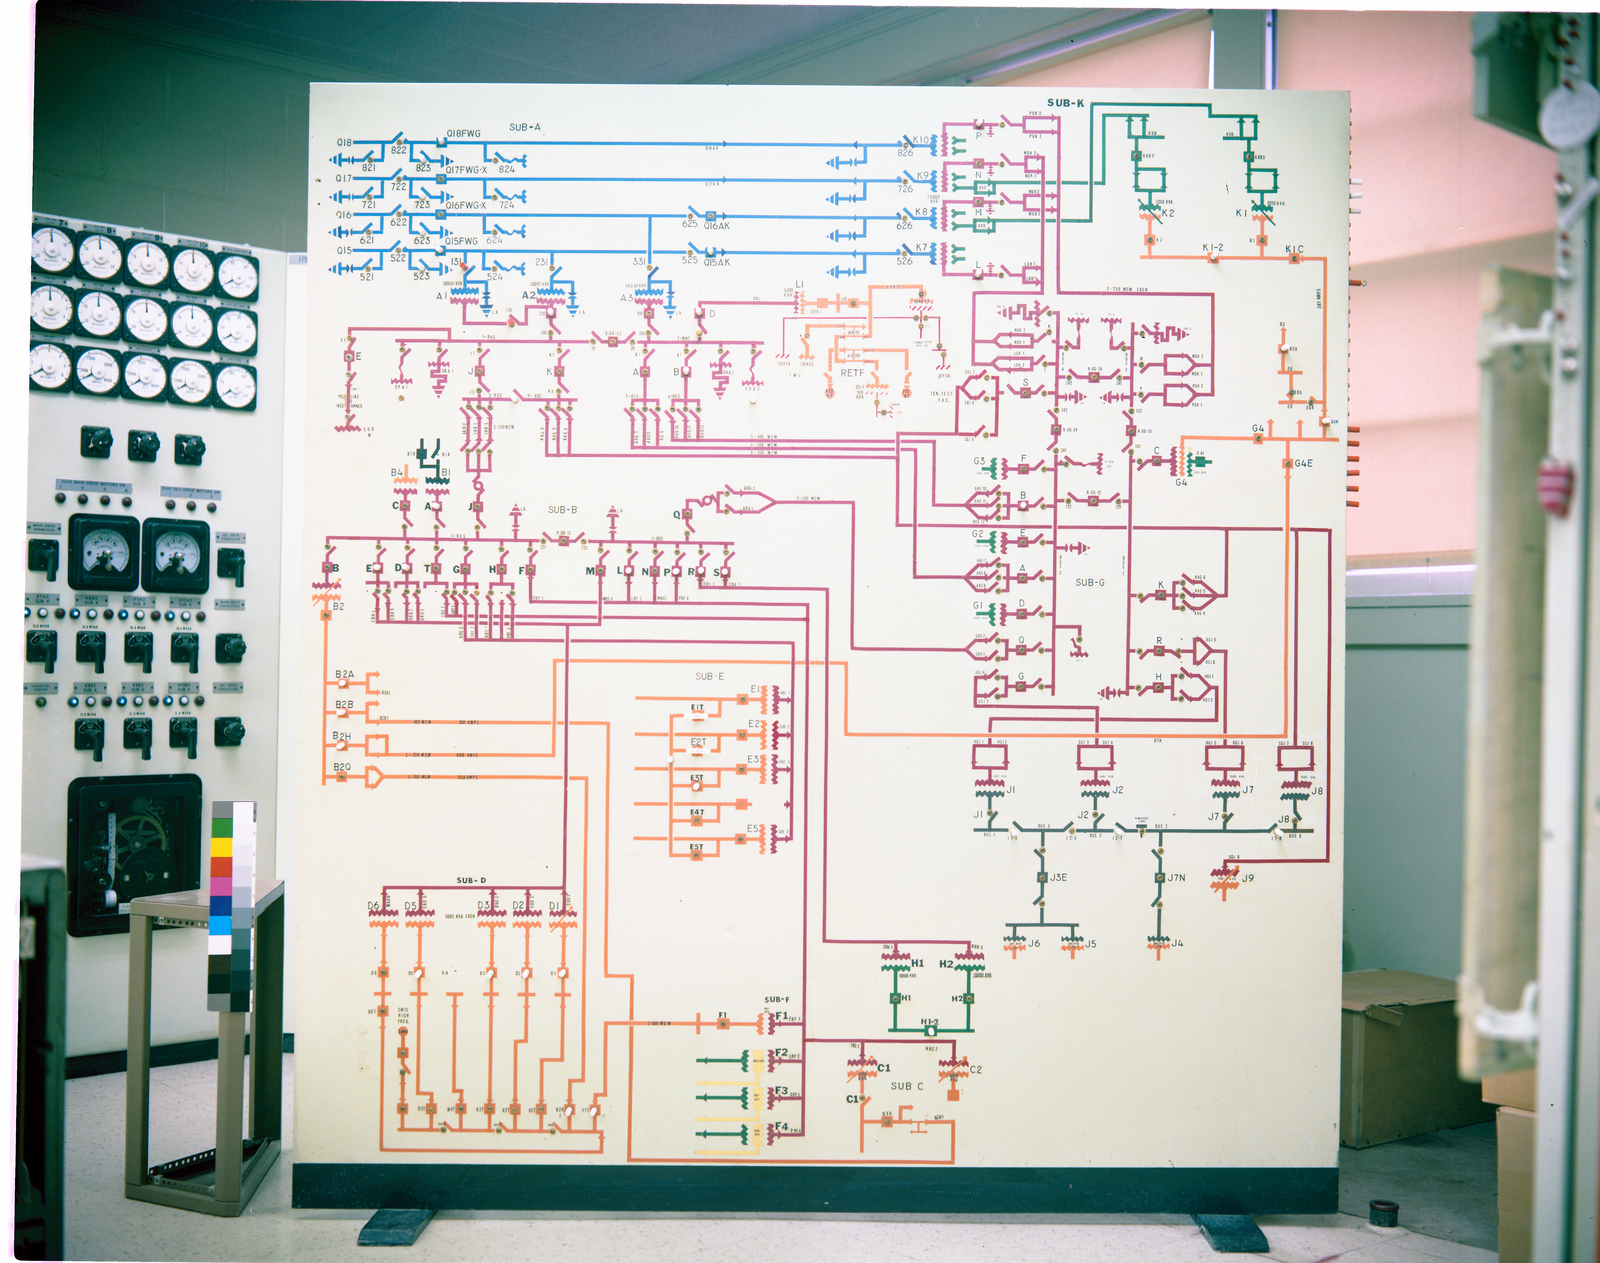 Circuit Diagram Boards In Electrical Distribution Office Picryl Drawing Diagrams